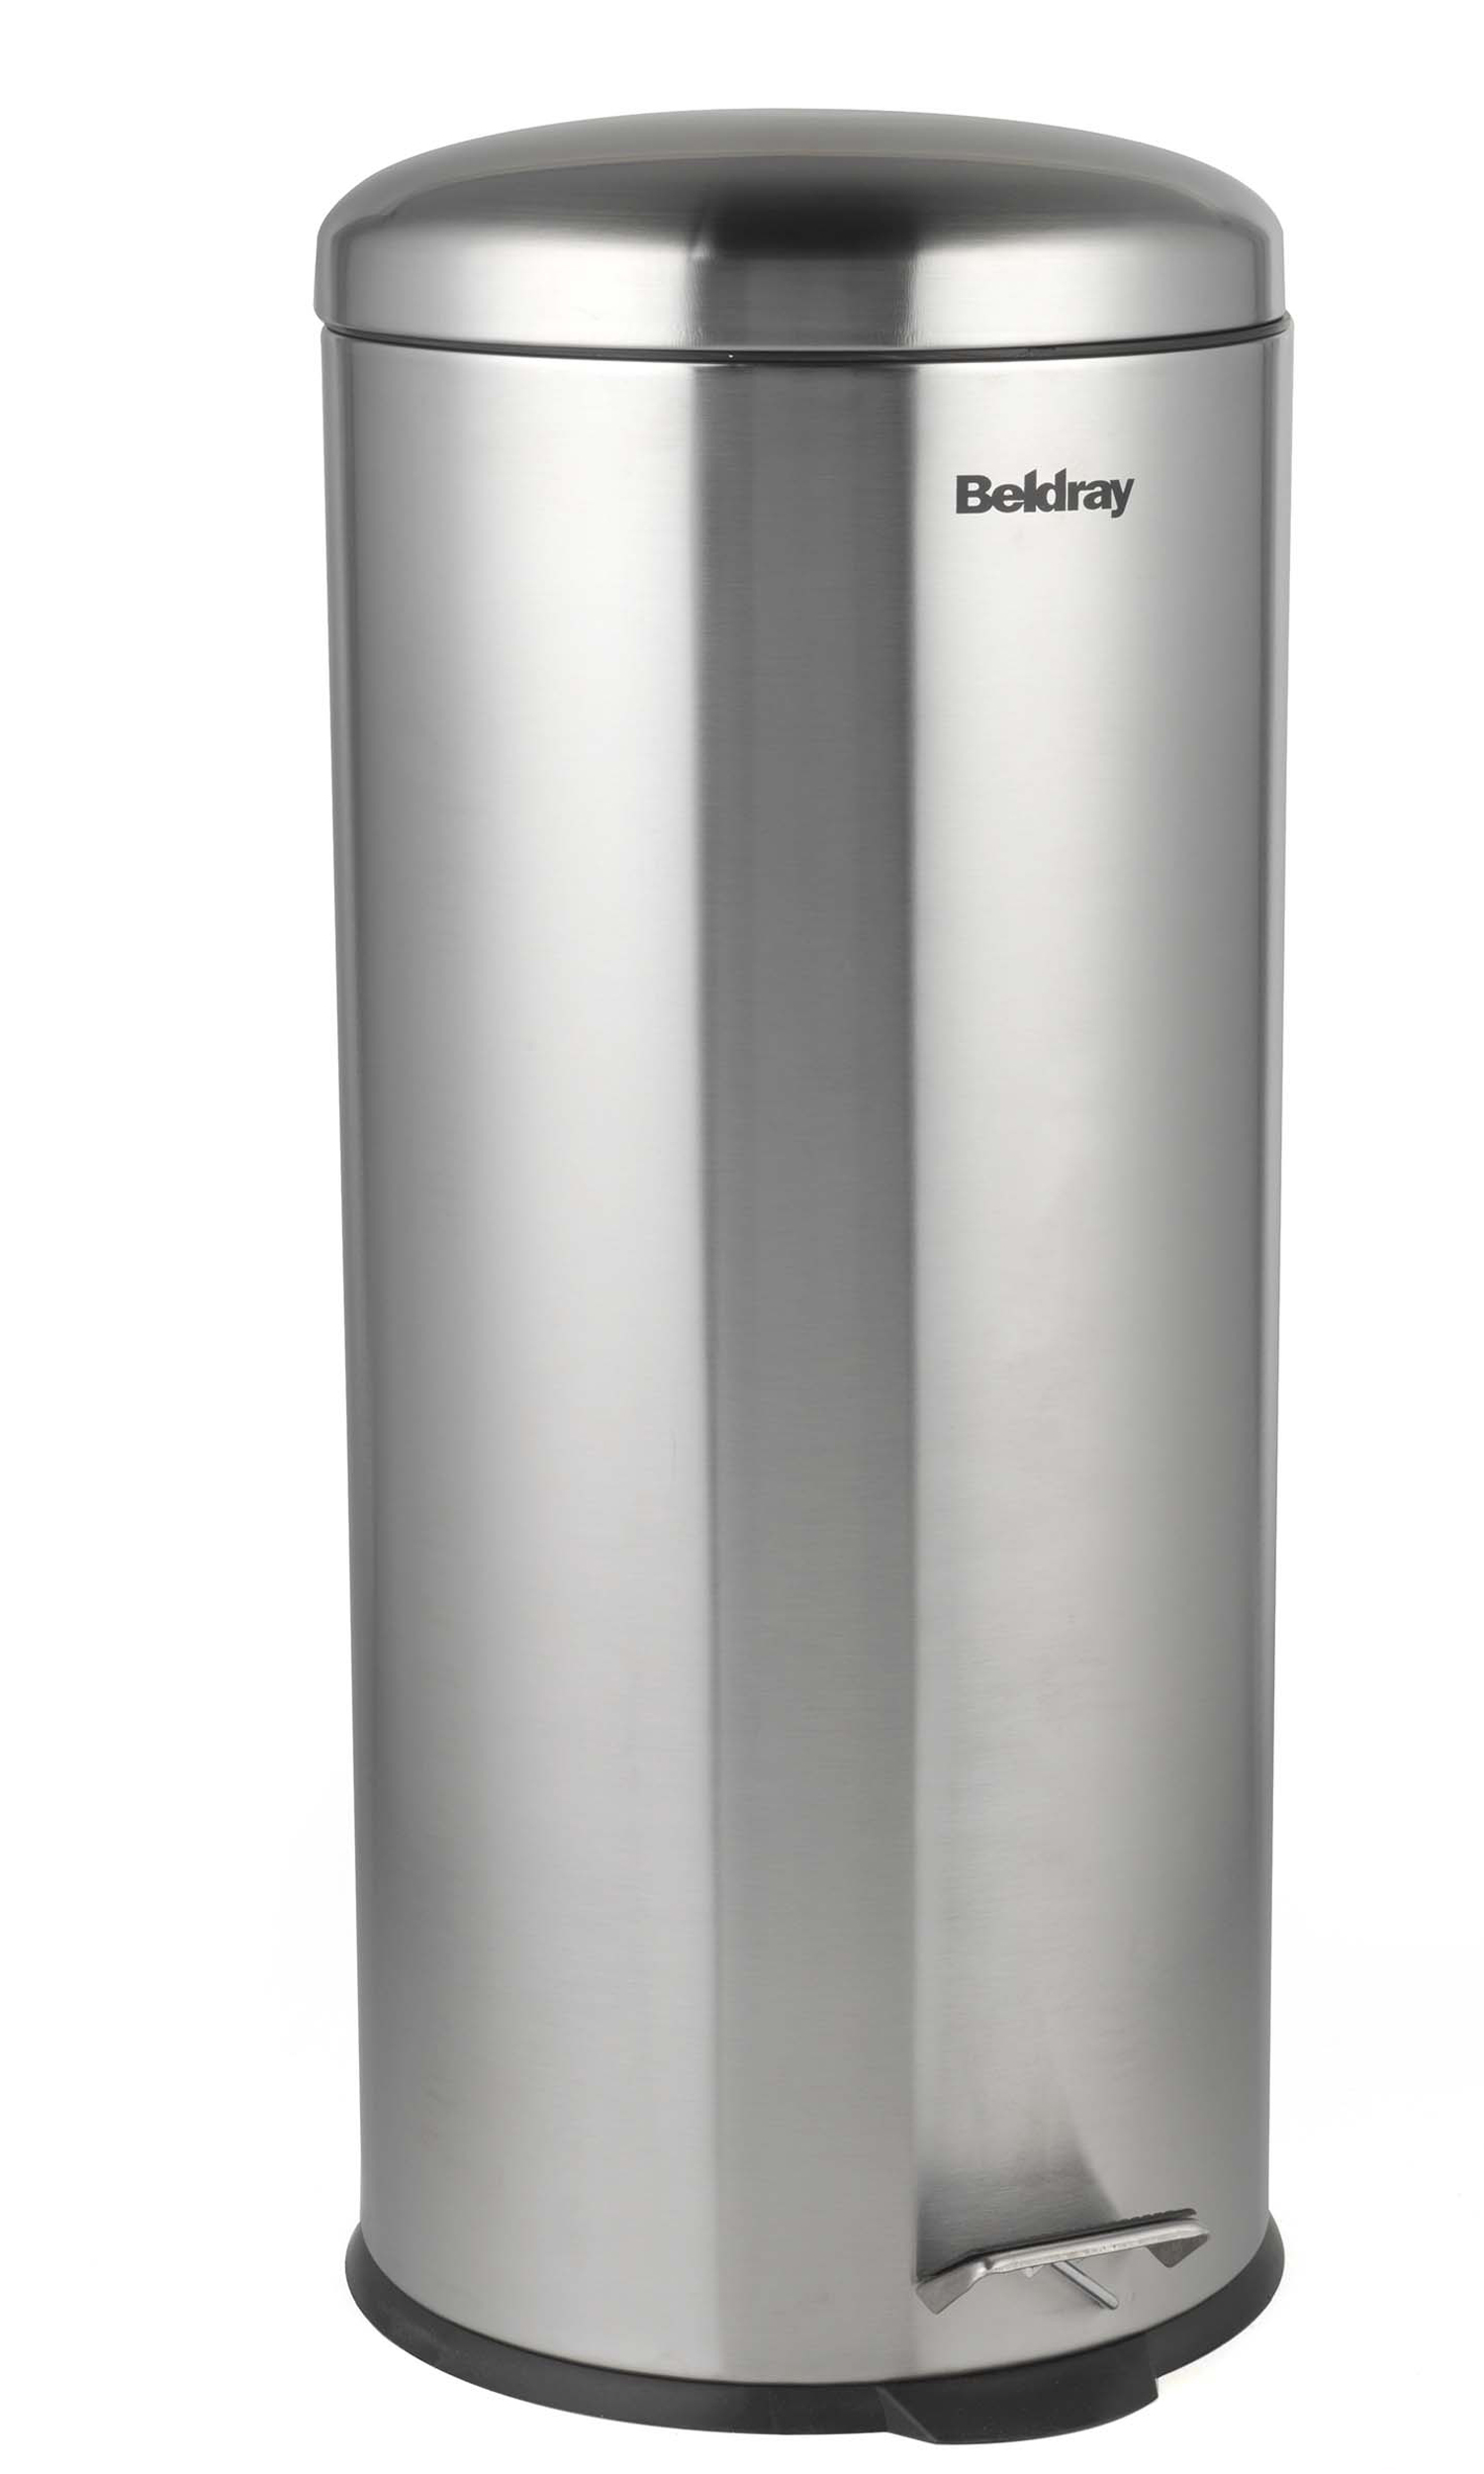 Kitchen Tidy Bins Beldray La038074ss 30 Litre Stainless Steel Kitchen Bin With Soft Closing Lid